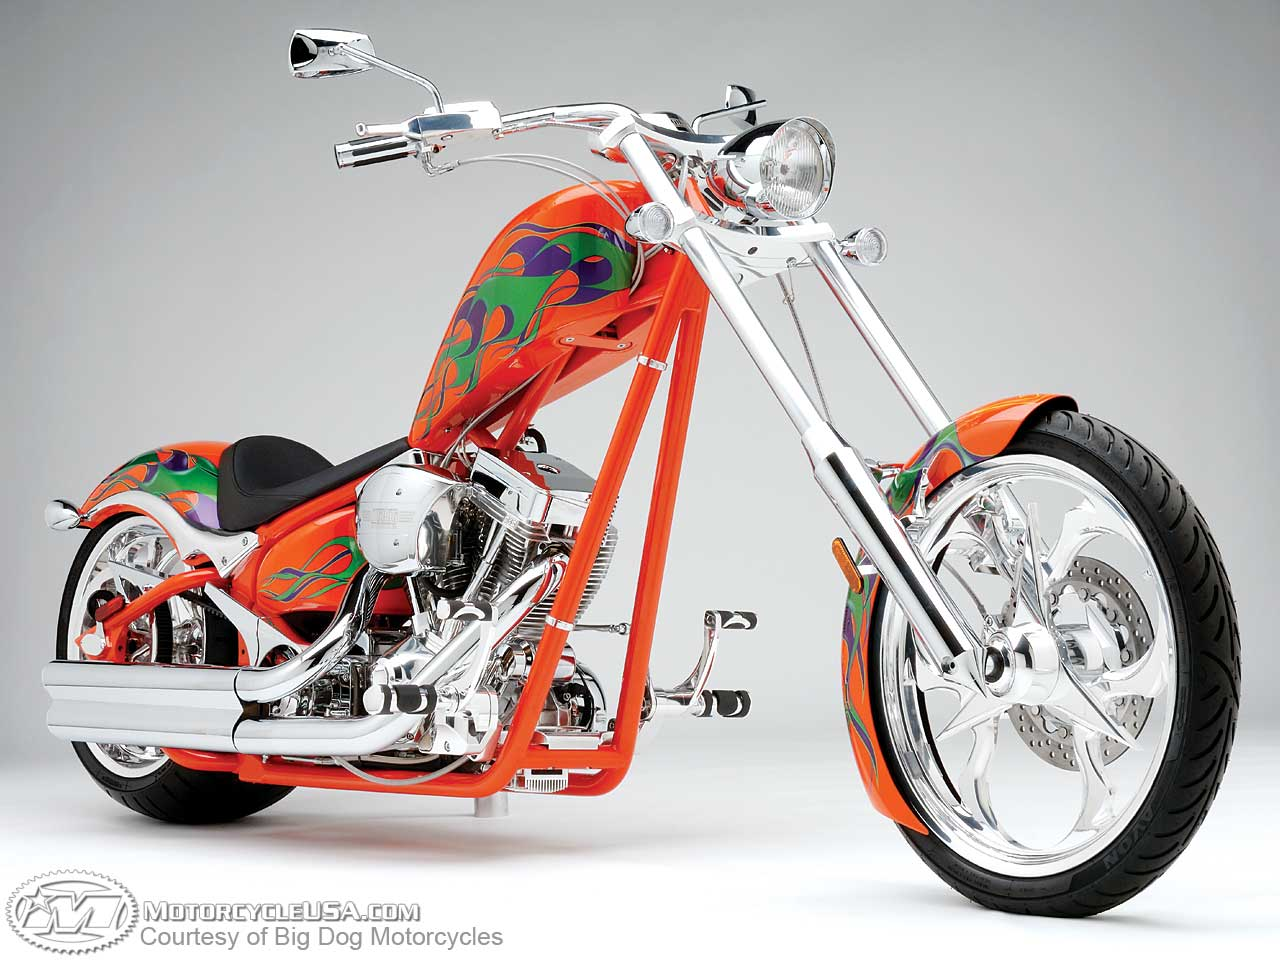 Big Dog Motorcycles #3